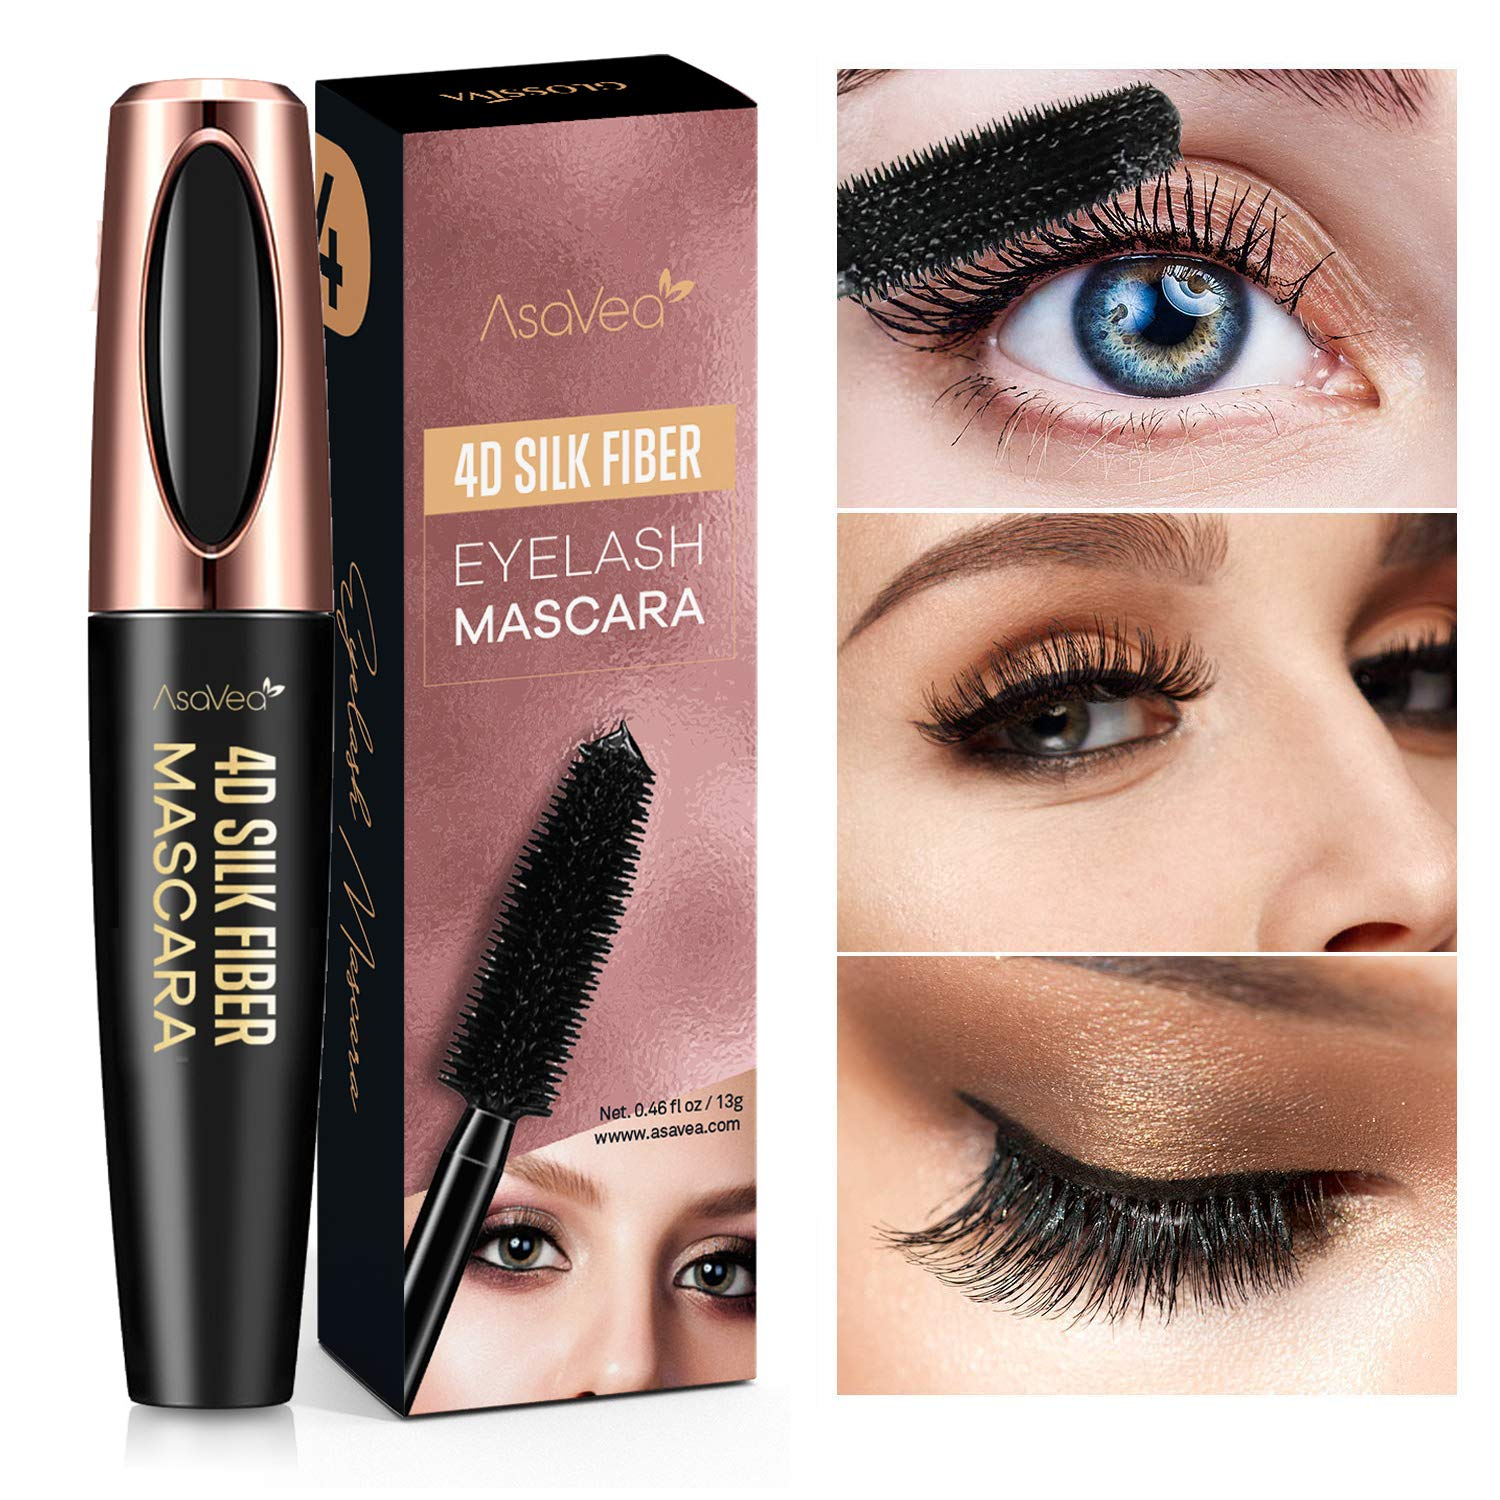 Natural 4D Silk Fiber Lash Mascara, Lengthening and Thick, Long Lasting, Waterproof & Smudge-Proof, All Day Exquisitely Lush, Full, Long, Thick, Smudge-Proof Eyelashes…